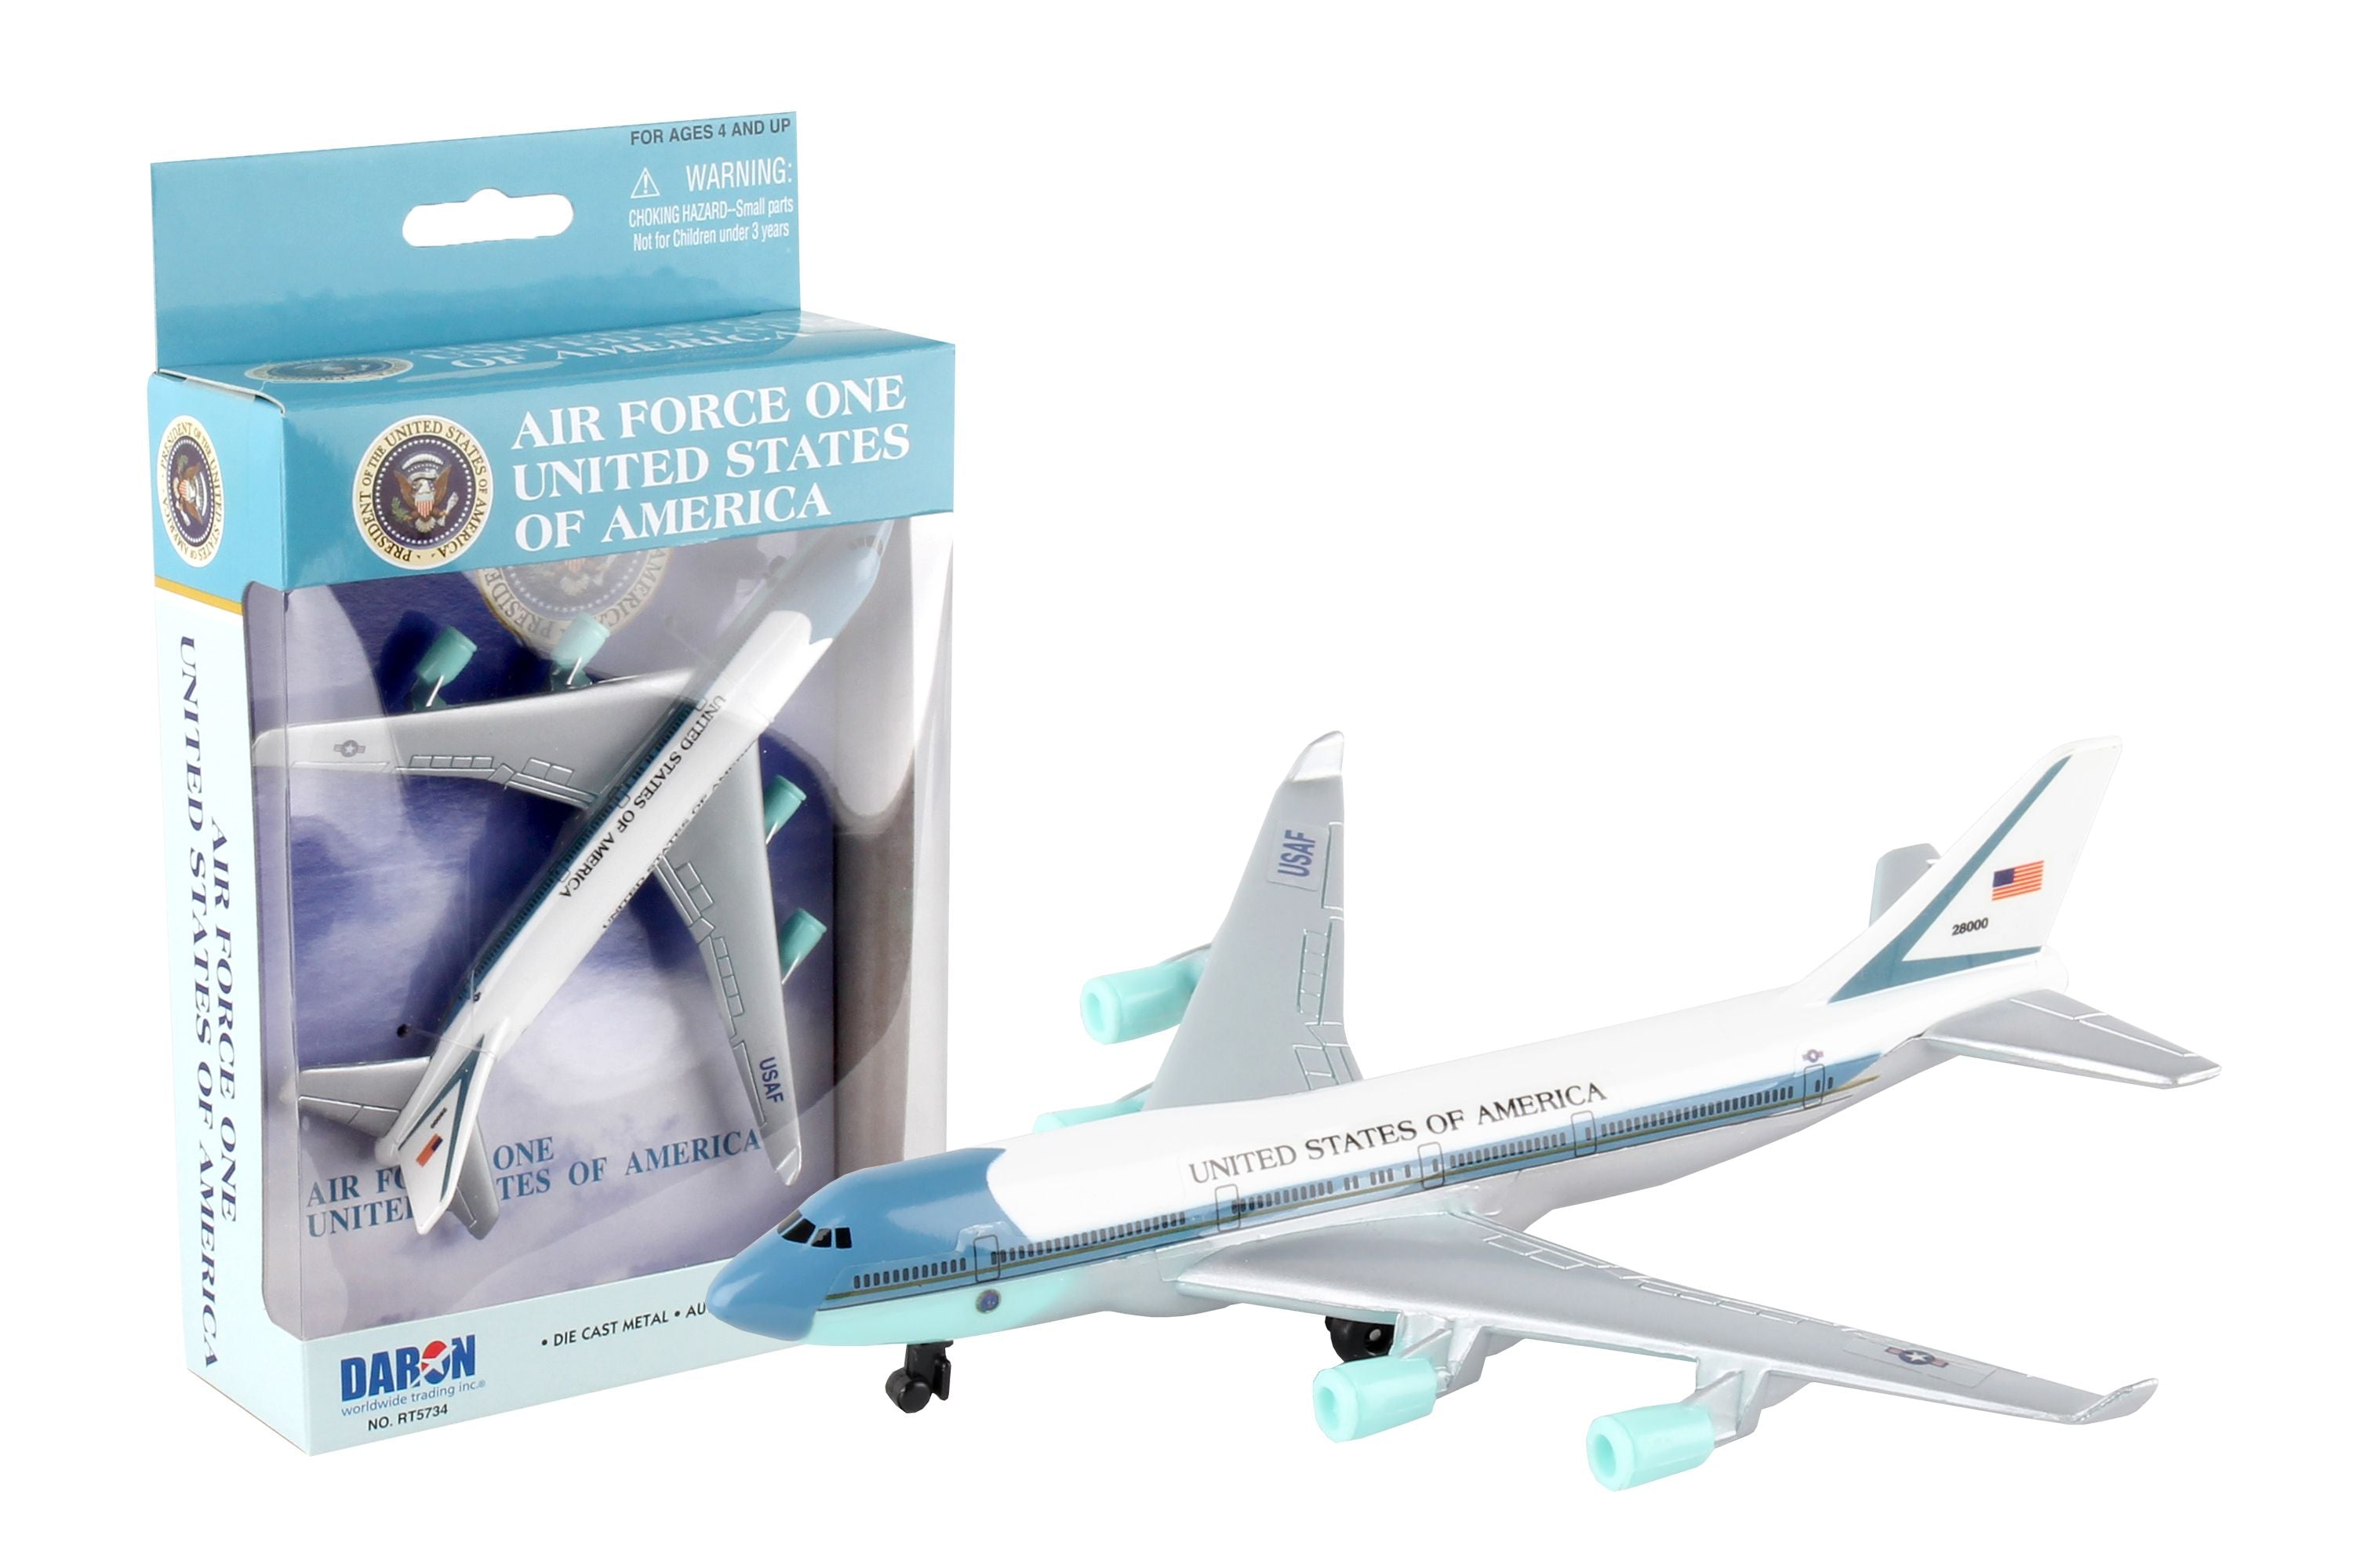 Daron Air Force One Usa Single Die Cast Collectible Plane Shop Munki